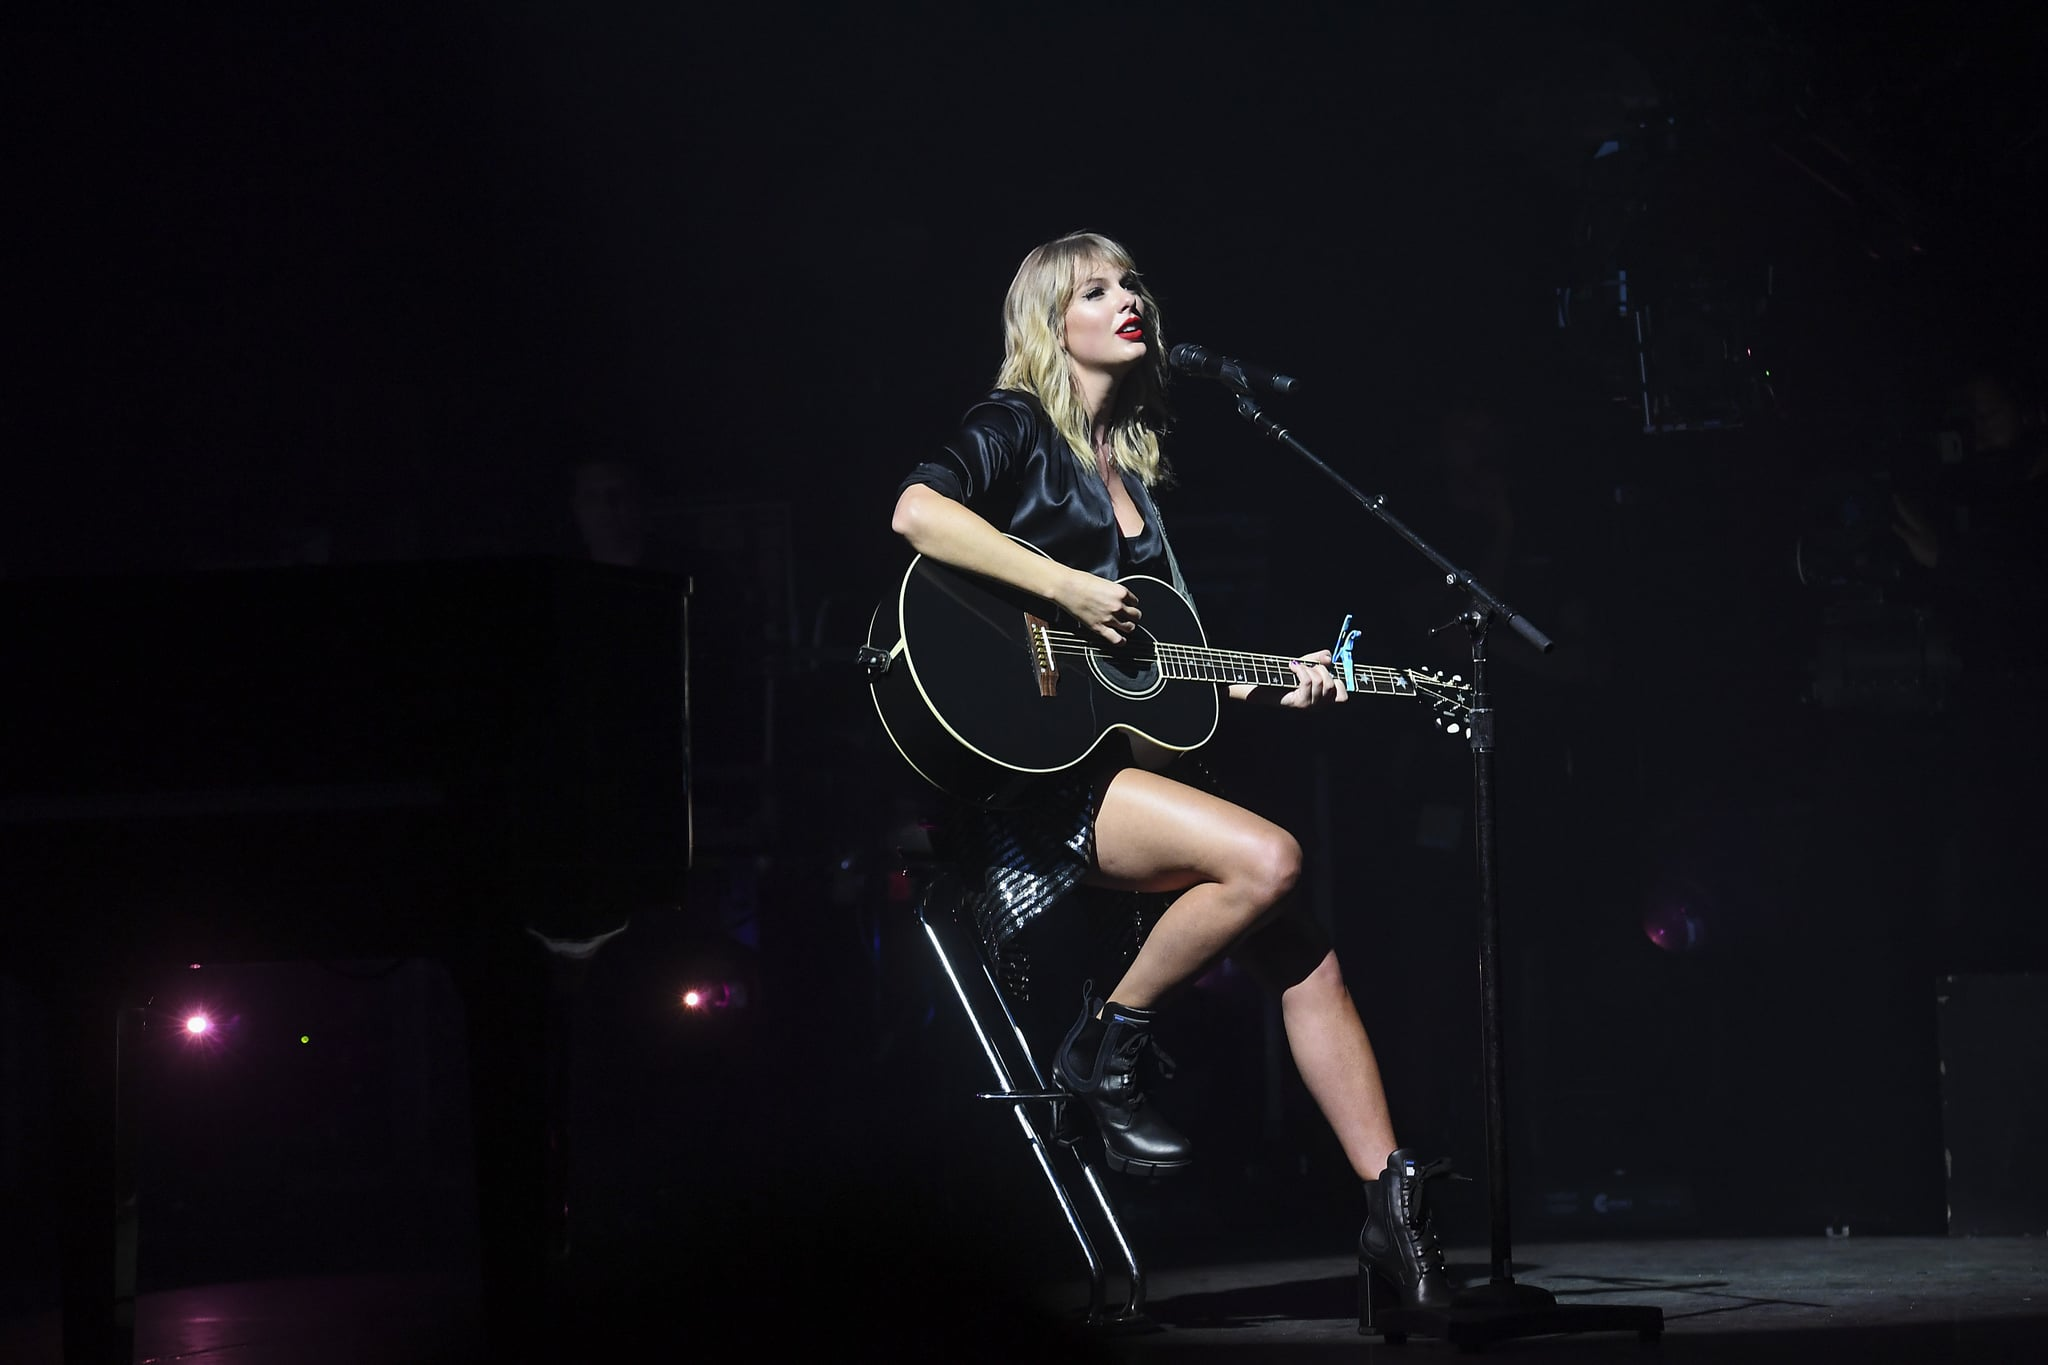 PARIS, FRANCE - SEPTEMBER 09: (EDITORS NOTE: Image approved by Artist) Taylor Swift performs during the